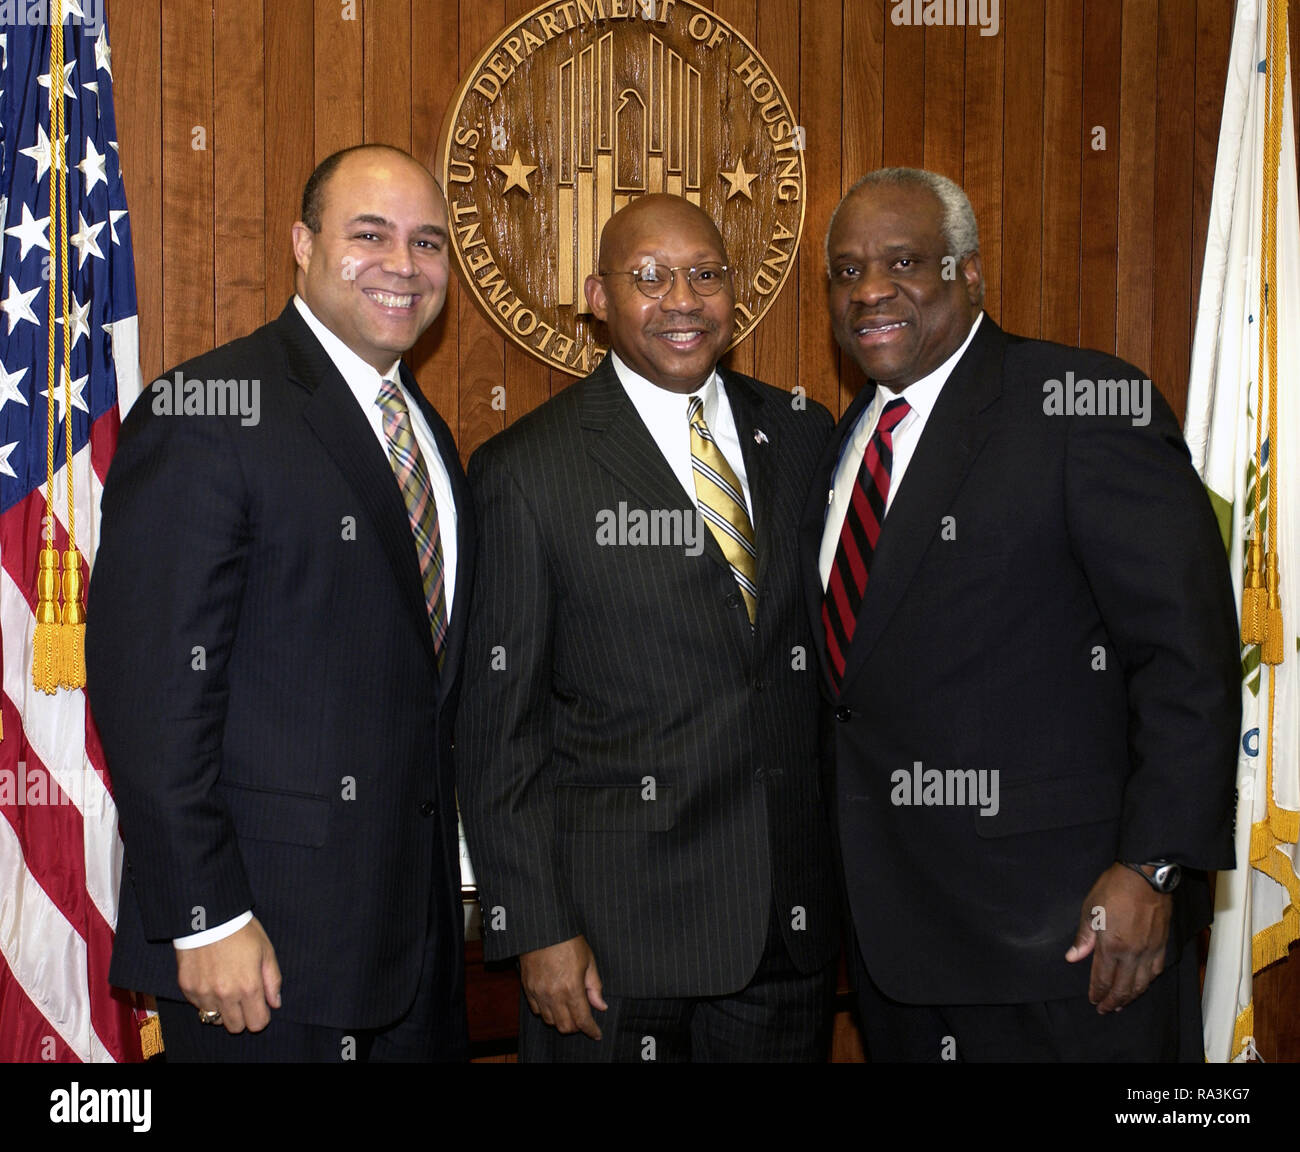 Secretary Alphonso Jackson, [center], with former Federal Communications Commission Chairman Michael Powell, [left], and U.S. Supreme Court Justice Clarence Thomas, [right], at HUD Headquarters. Stock Photo